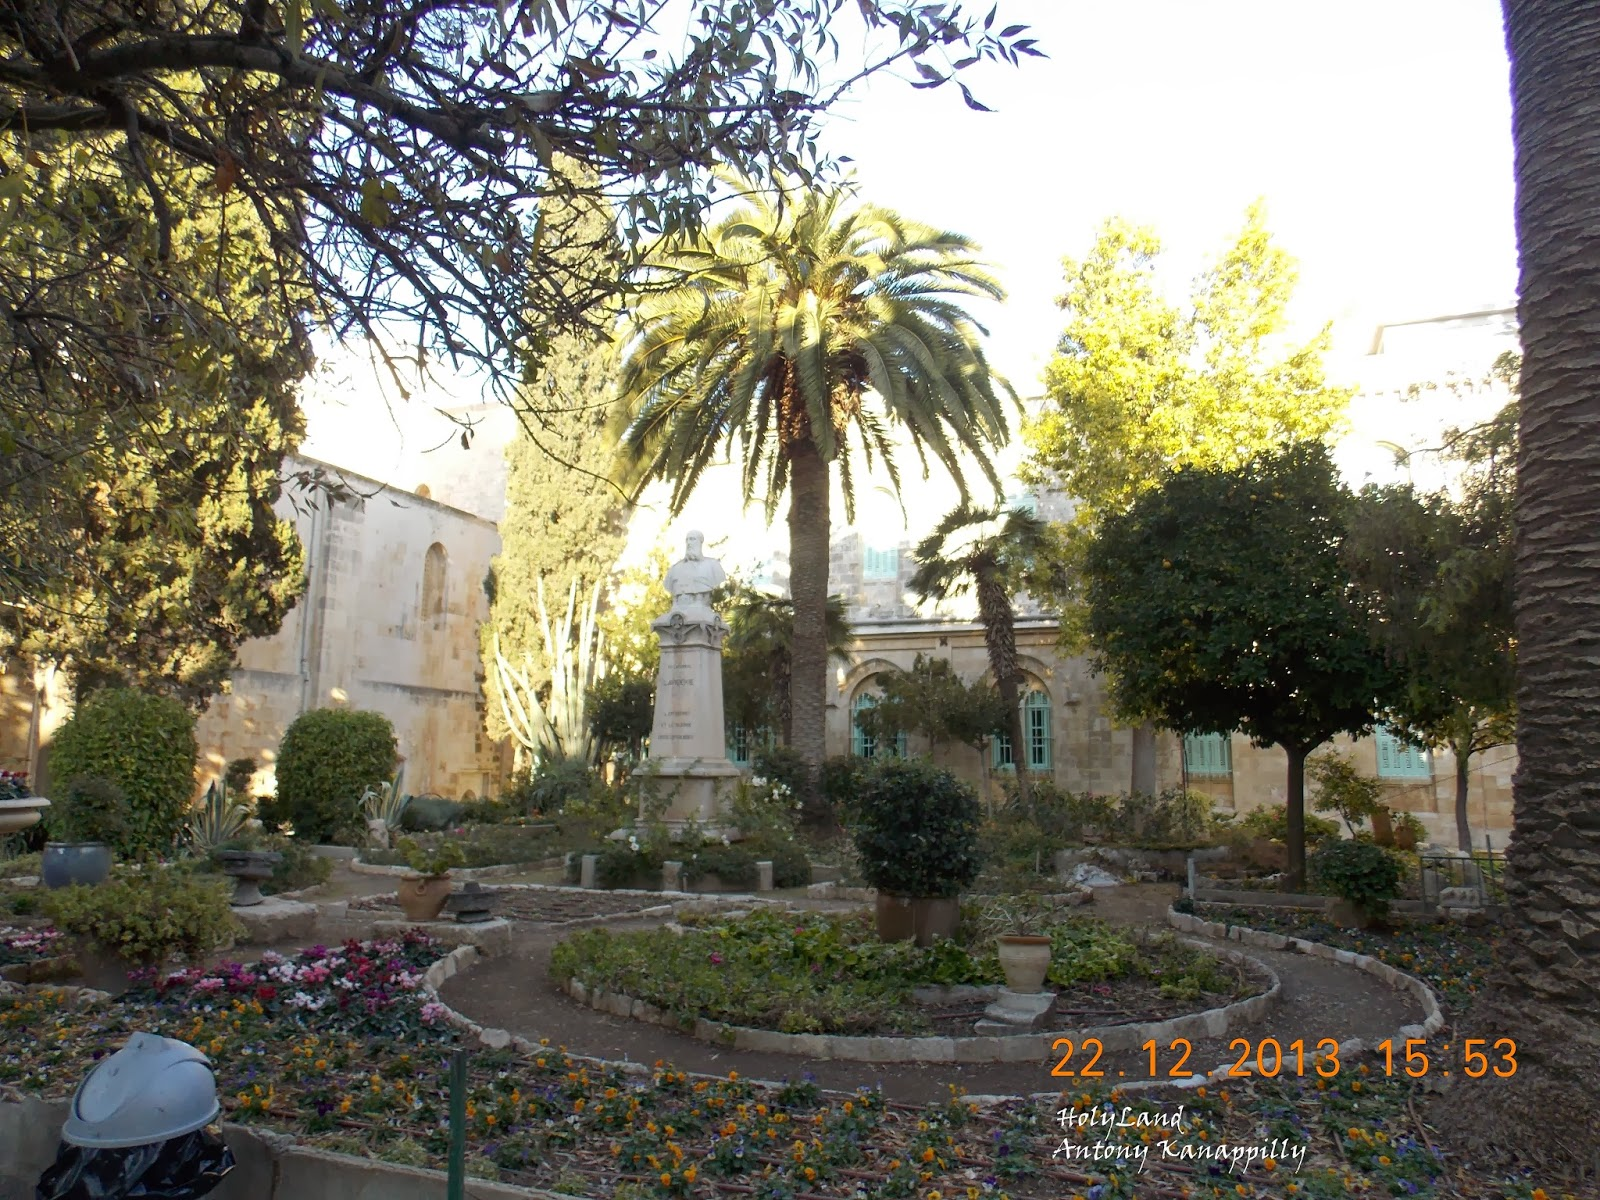 My Holy Land Trip February 2014